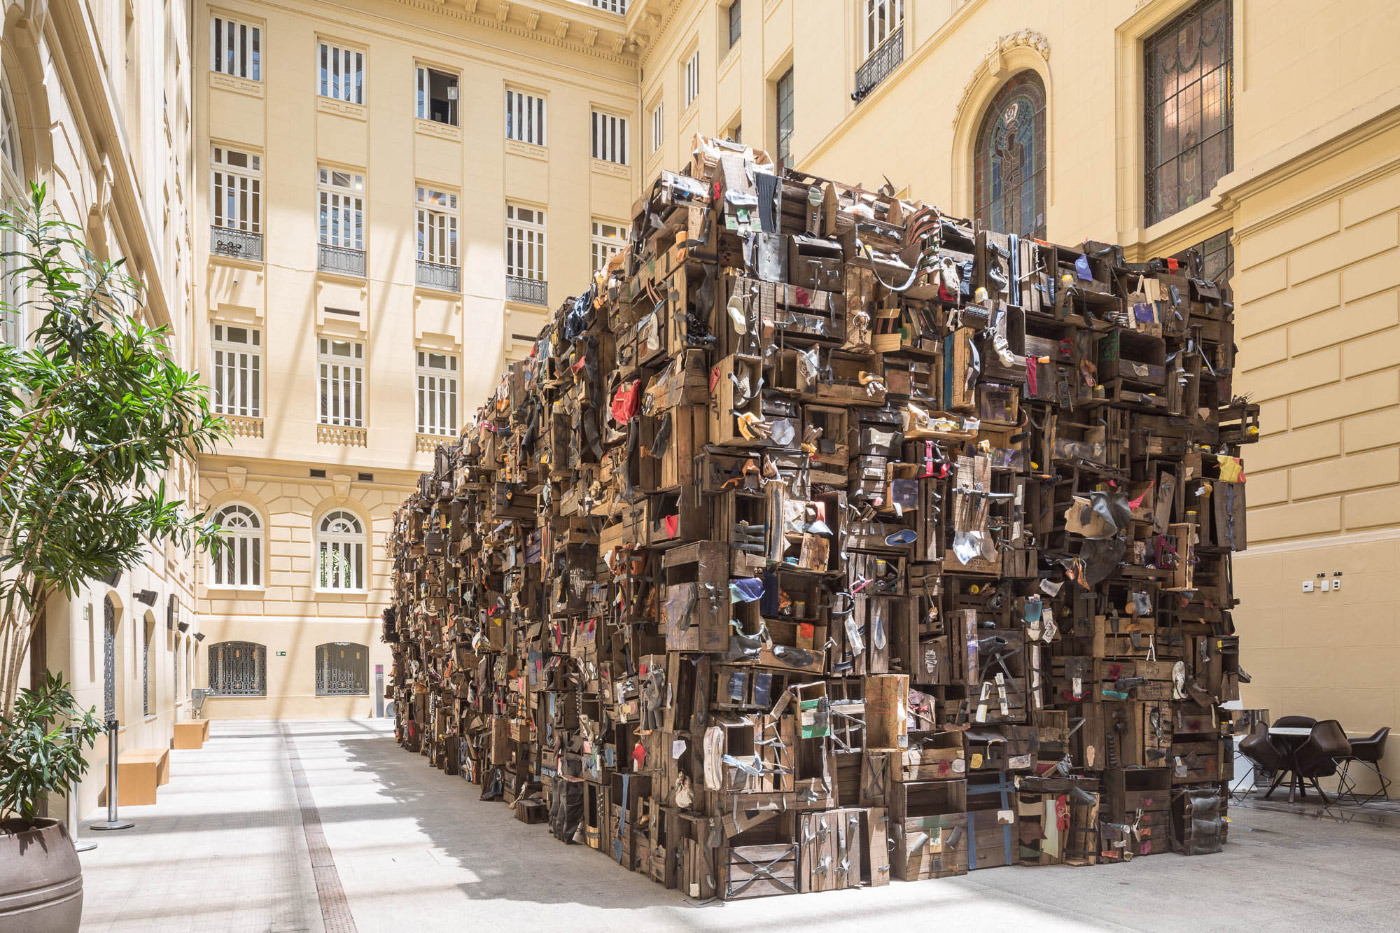 An art object made of crates